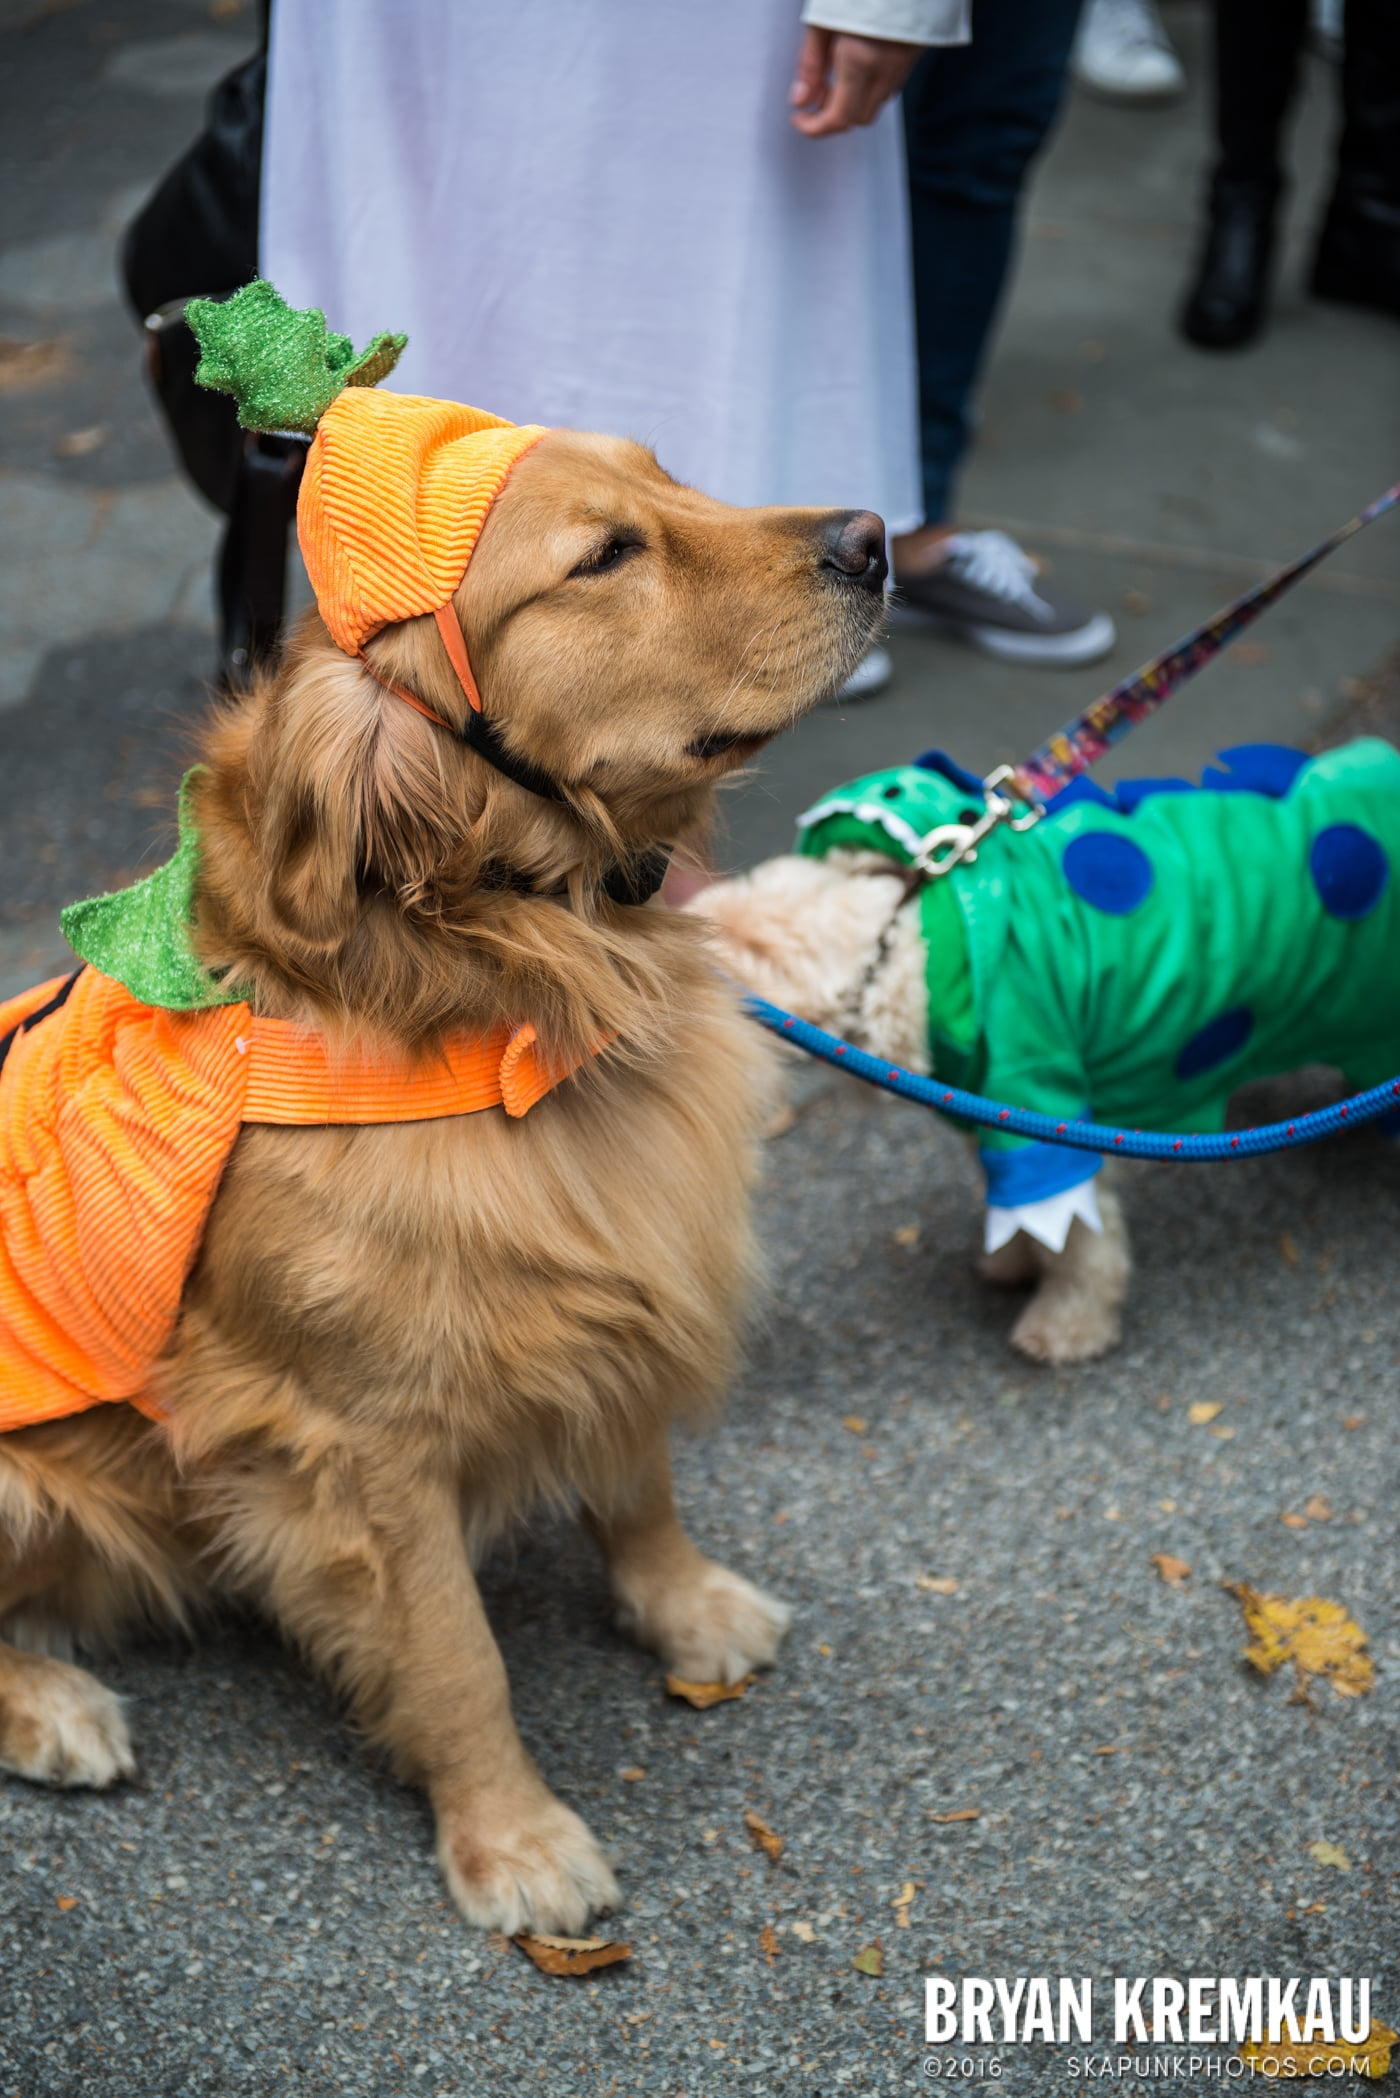 Tompkins Square Halloween Dog Parade 2015 @ Tompkins Square Park, NYC – 10.24.15 (6)